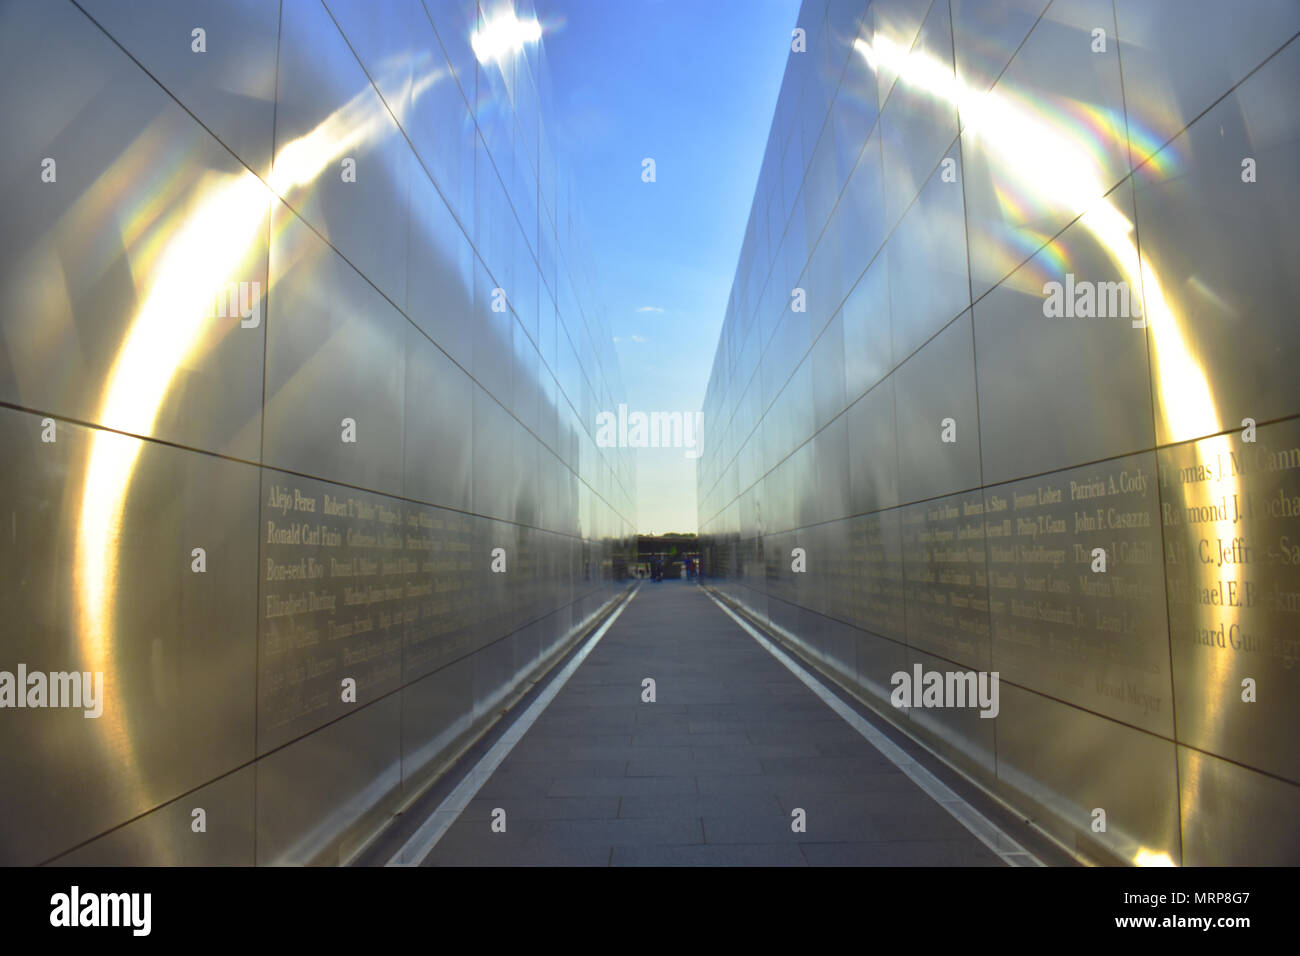 The setting sun reflects a ring of fire inside the Empty Sky memorial at Liberty State Park in Jersey City, NJ - Stock Image